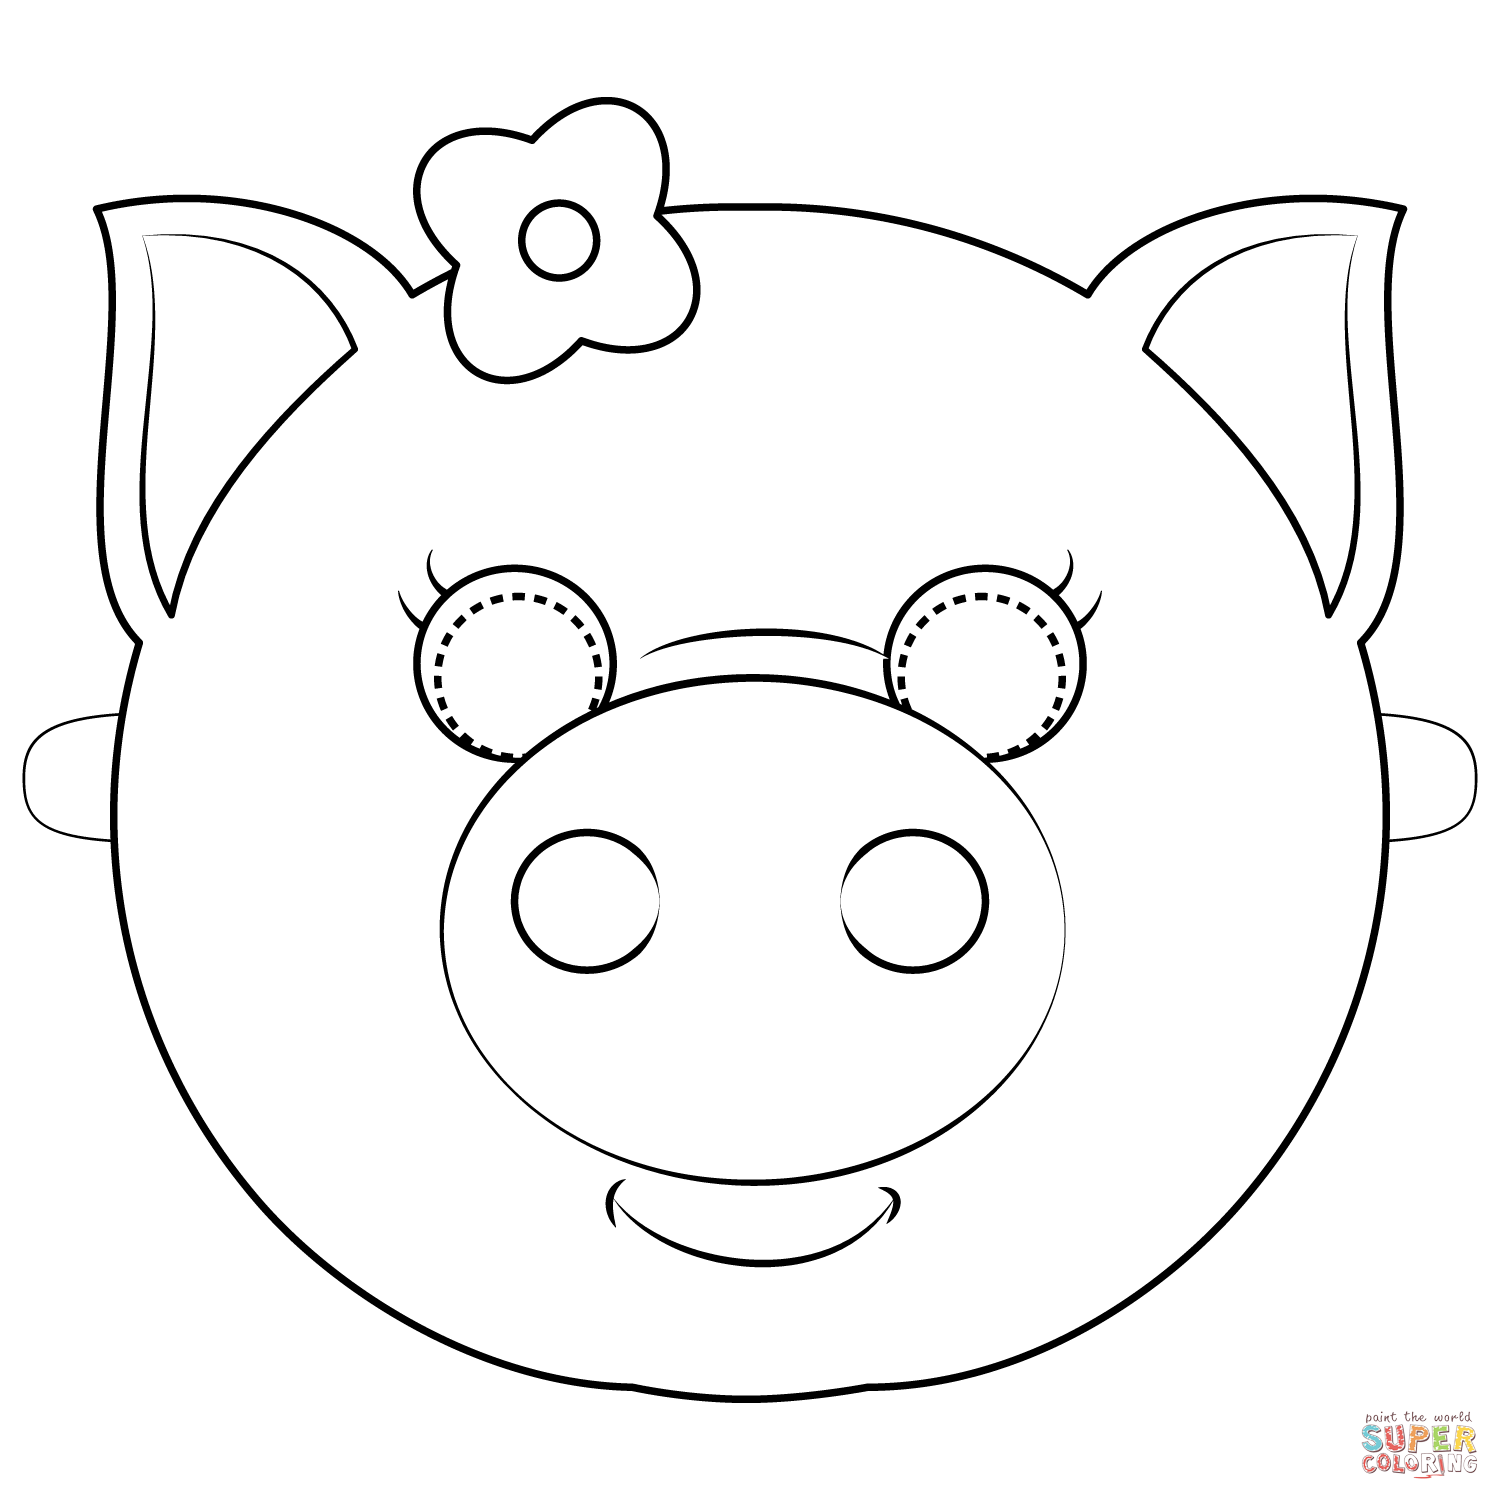 coloring mask animal pig mask coloring page free printable coloring pages coloring animal mask